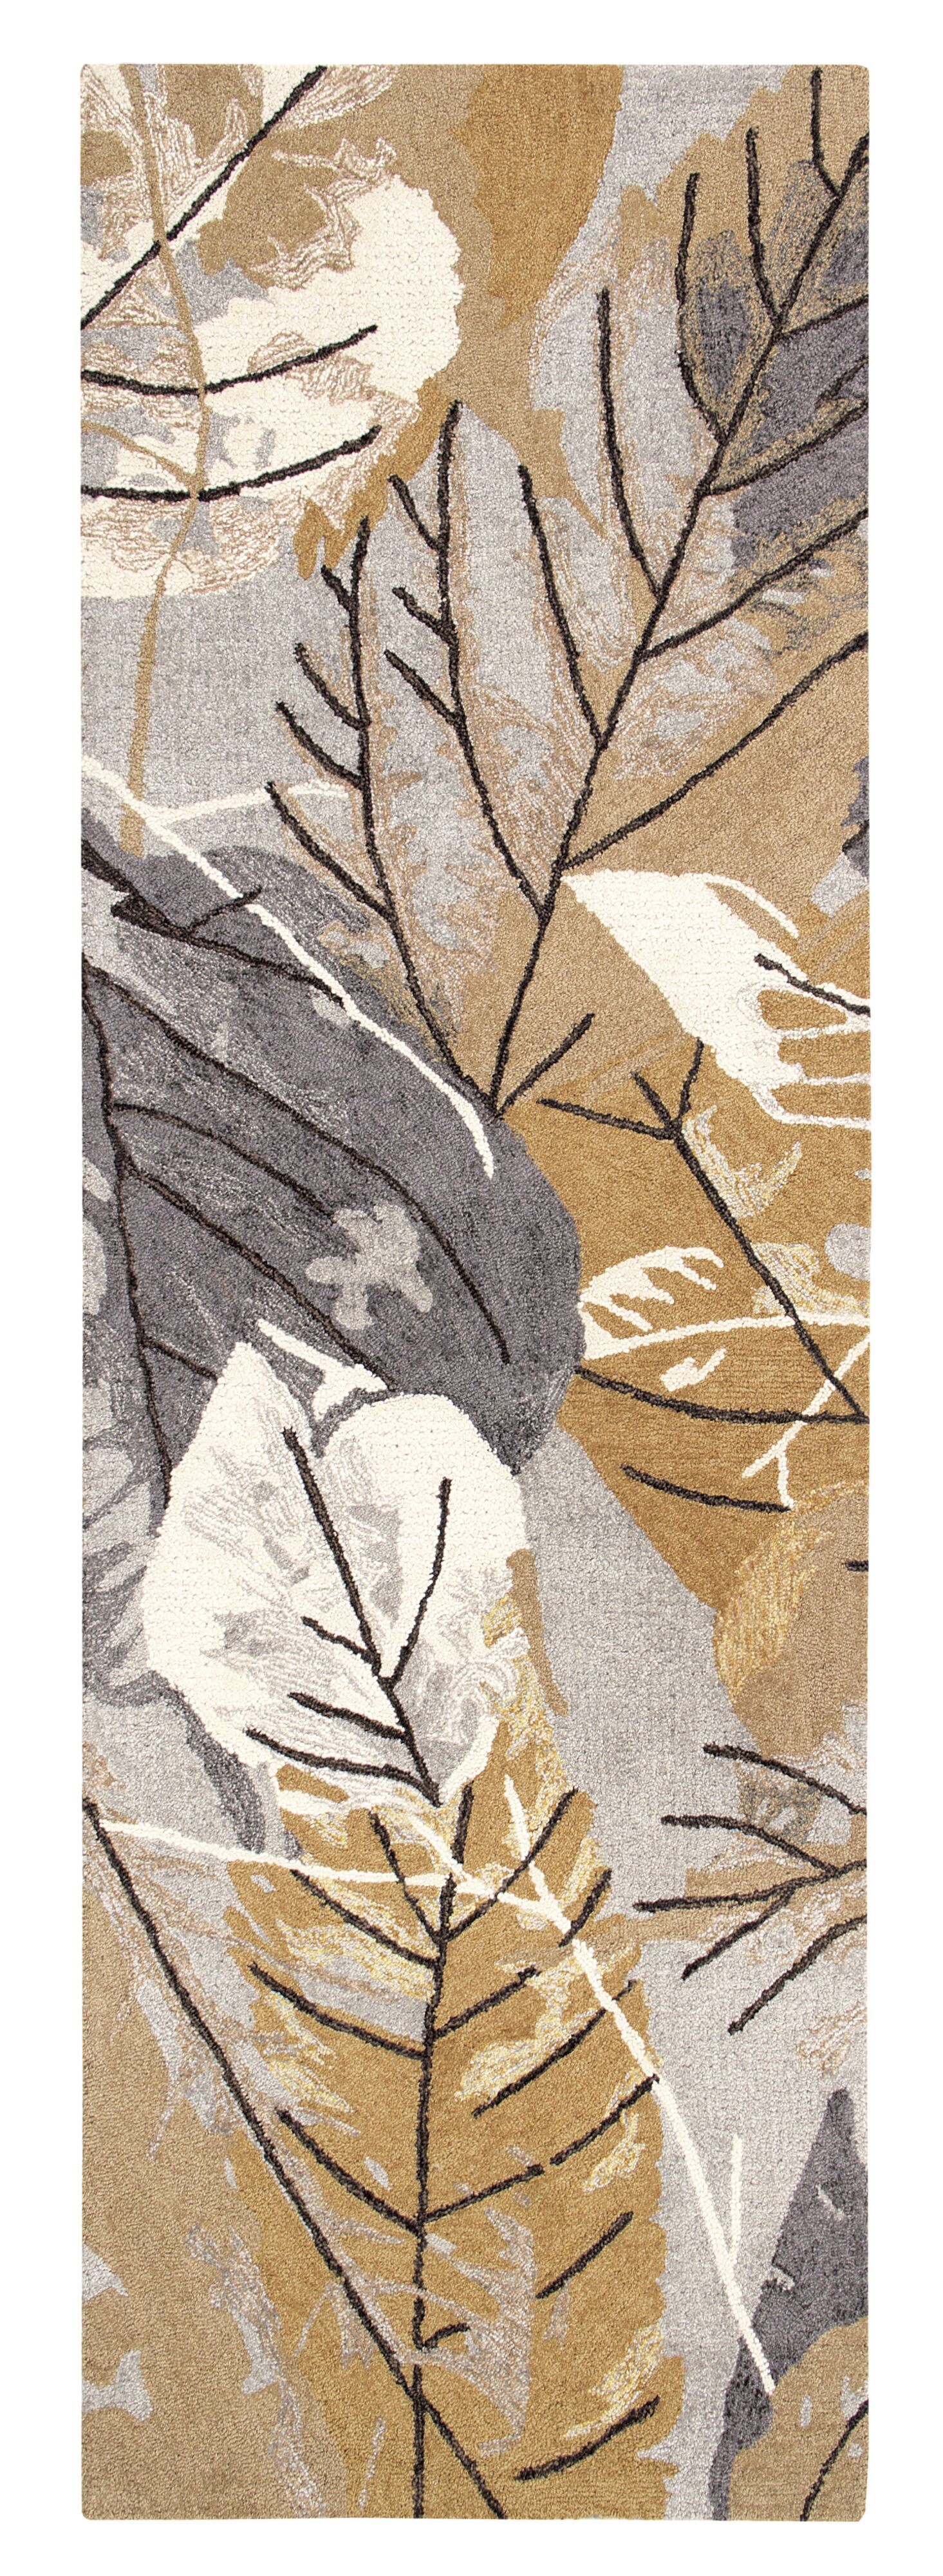 Hickory Hand-Tufted Gray/Brown Indoor Area Rug Rug Size: Runner 2'6